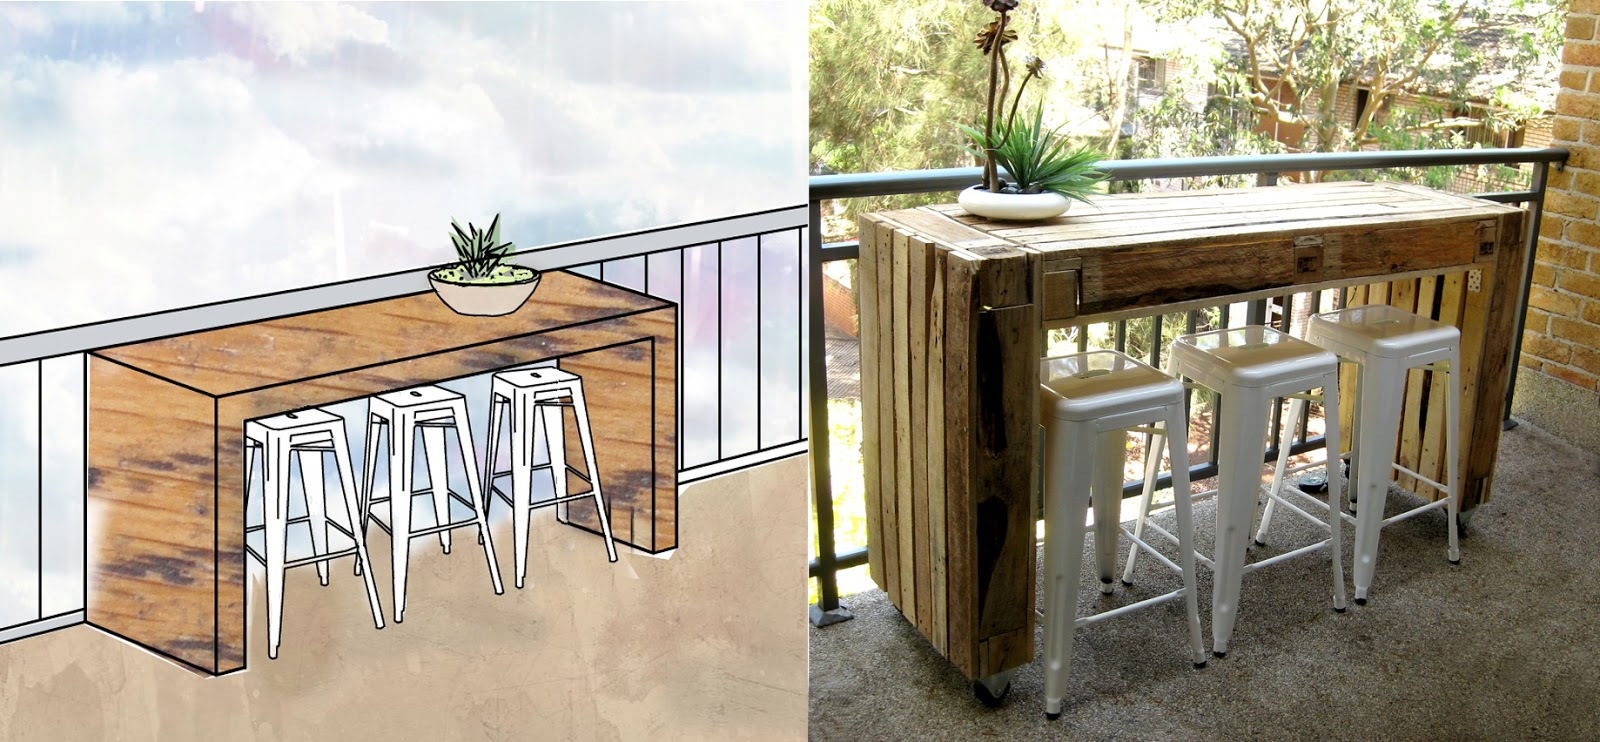 Custom balcony table made of pallets ecocentric for The balcony restaurant